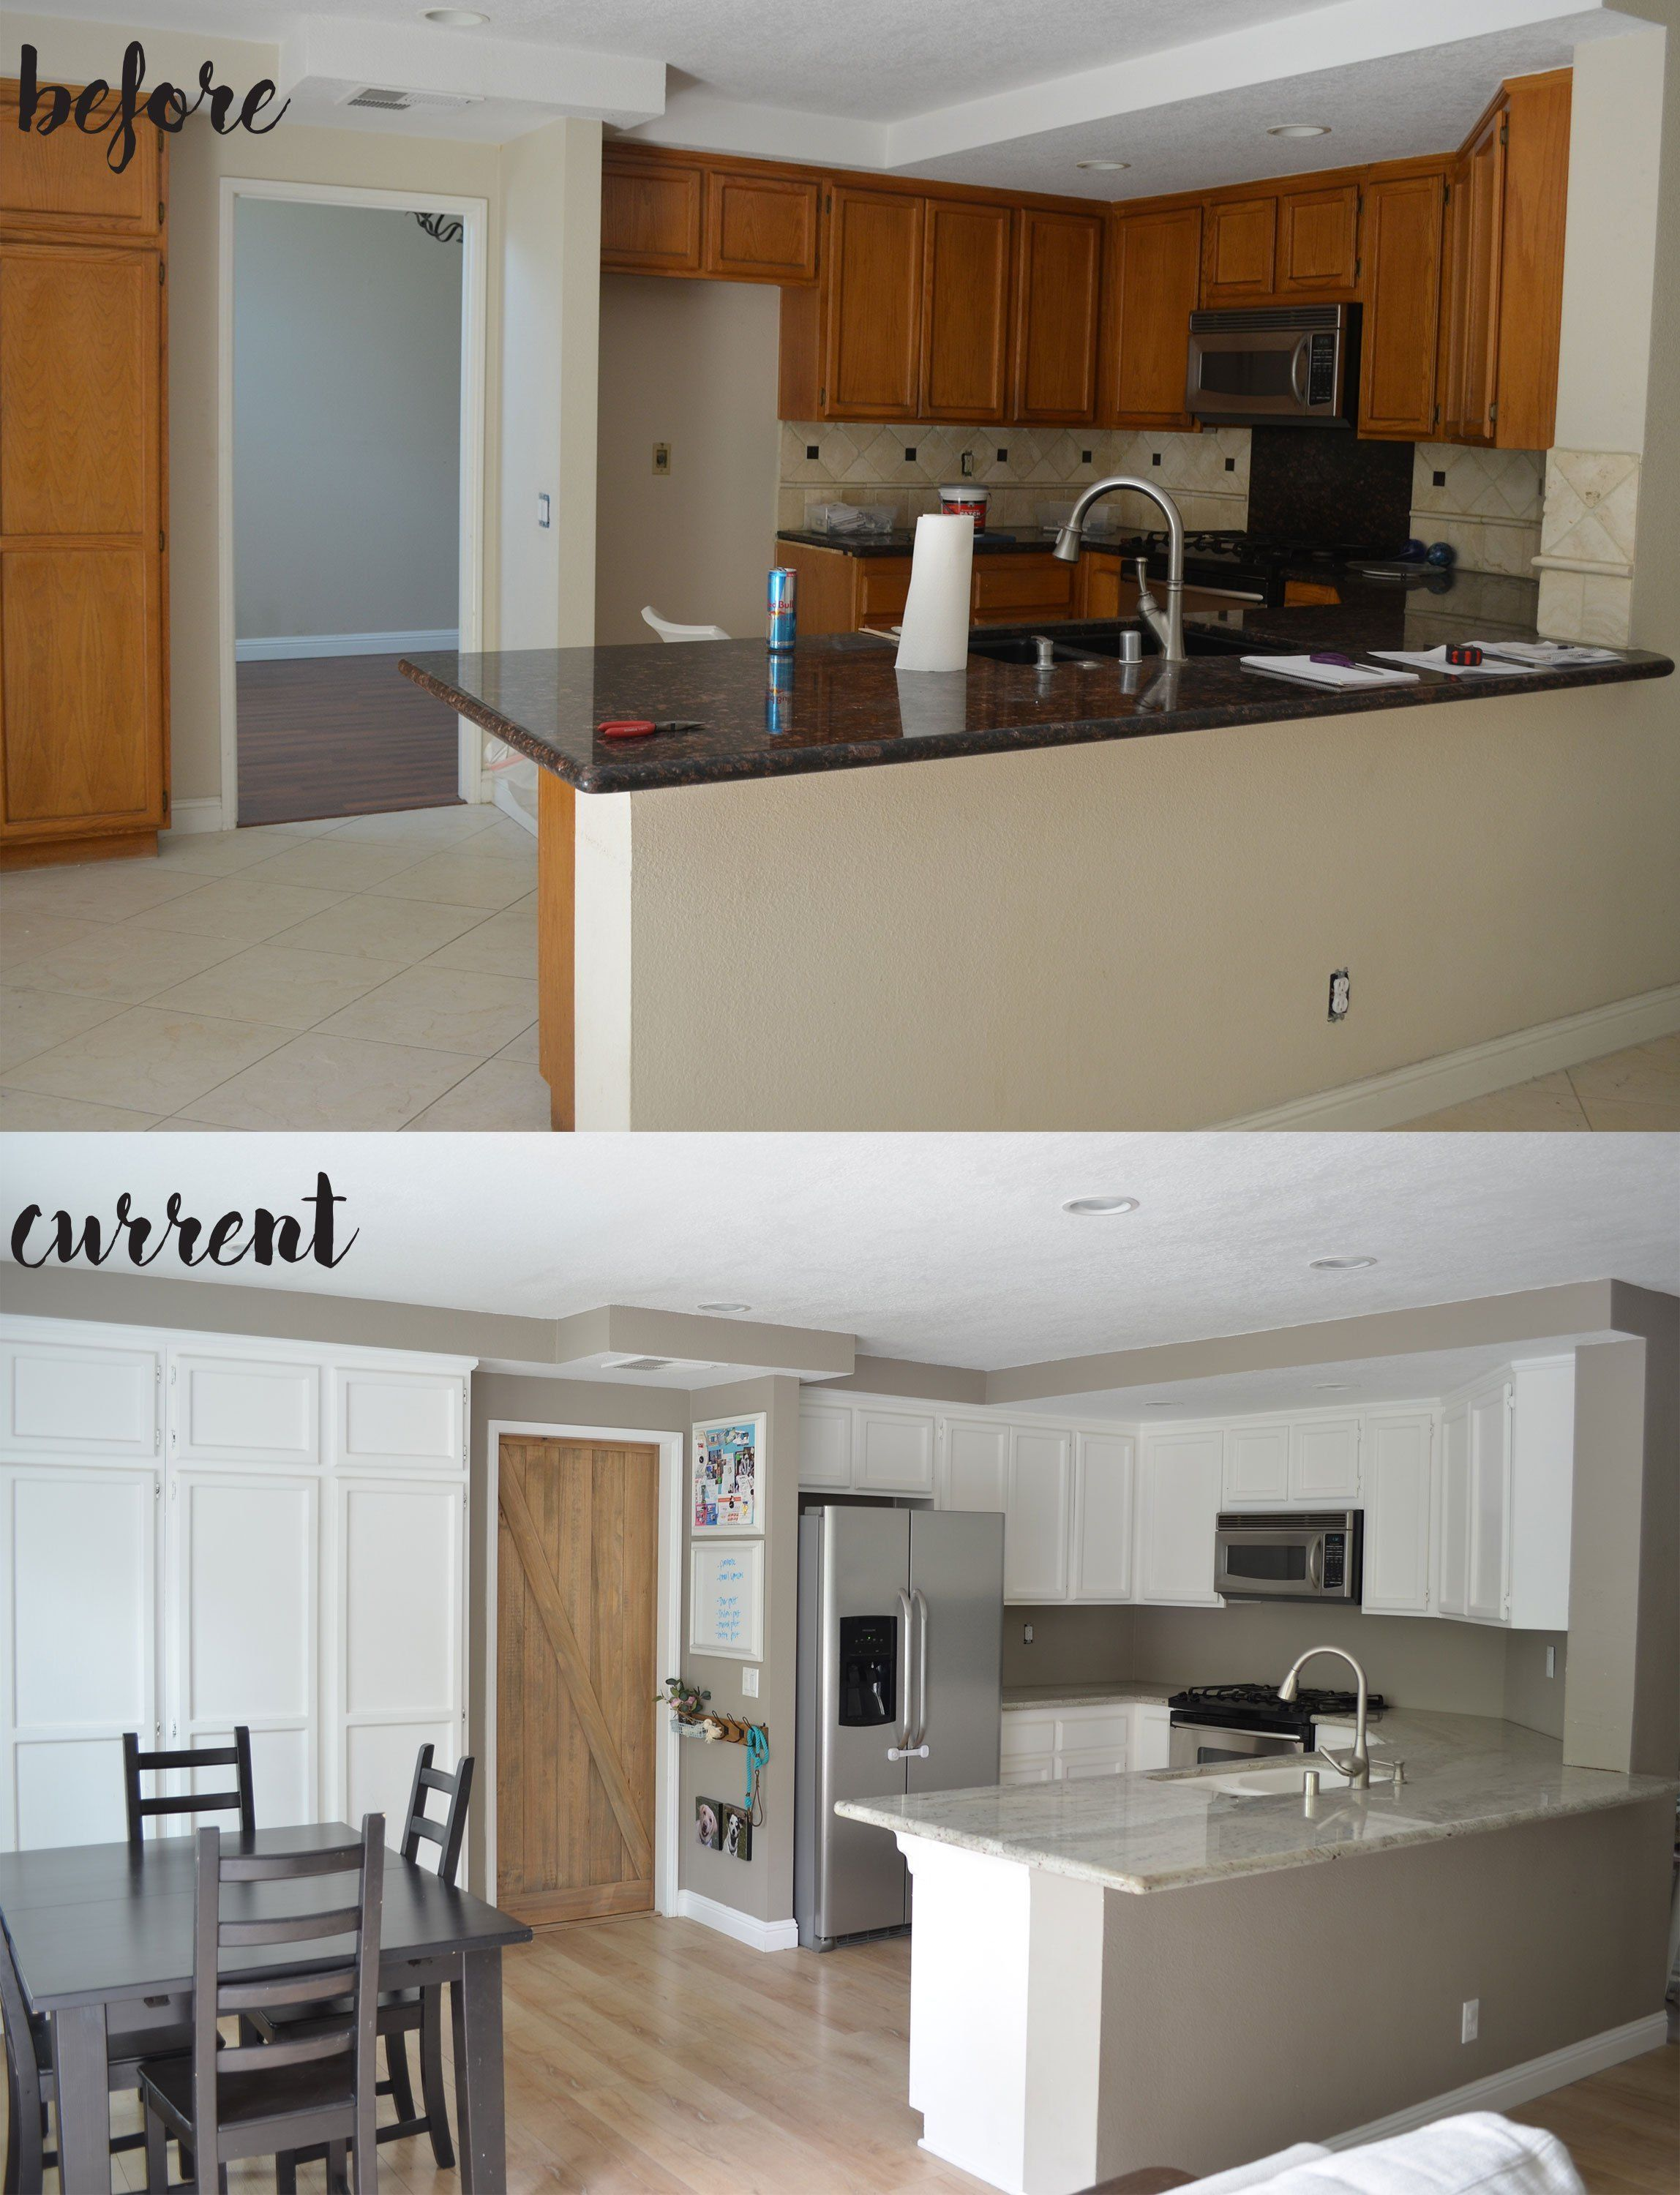 How To Repaint Kitchen Cabinets In 2020 Repainting Kitchen Cabinets Kitchen Cabinet Remodel Kitchen Remodel Software